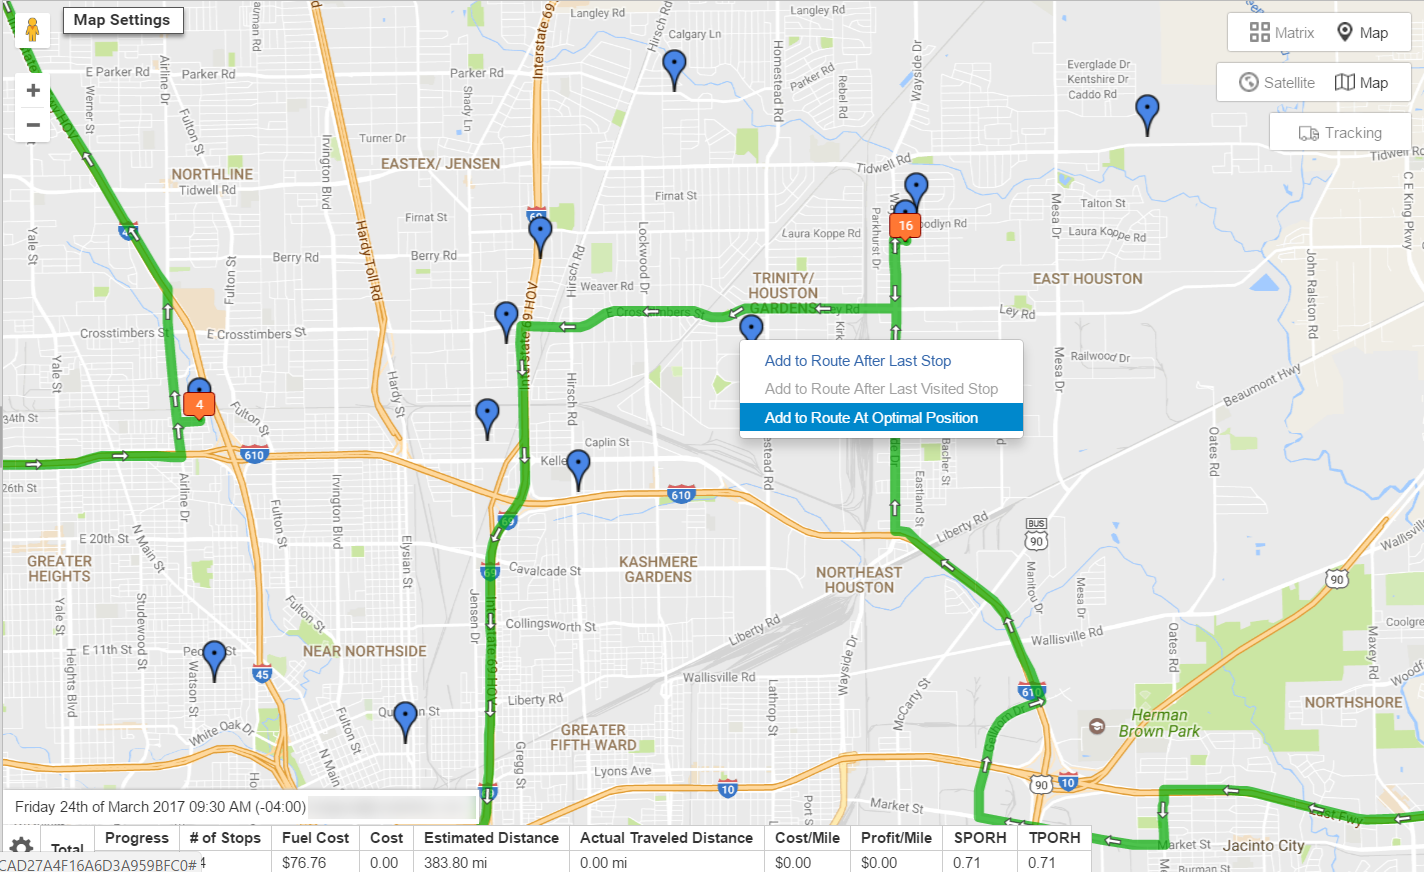 Route planning with Route4Me allows you to add destinations using the address book map